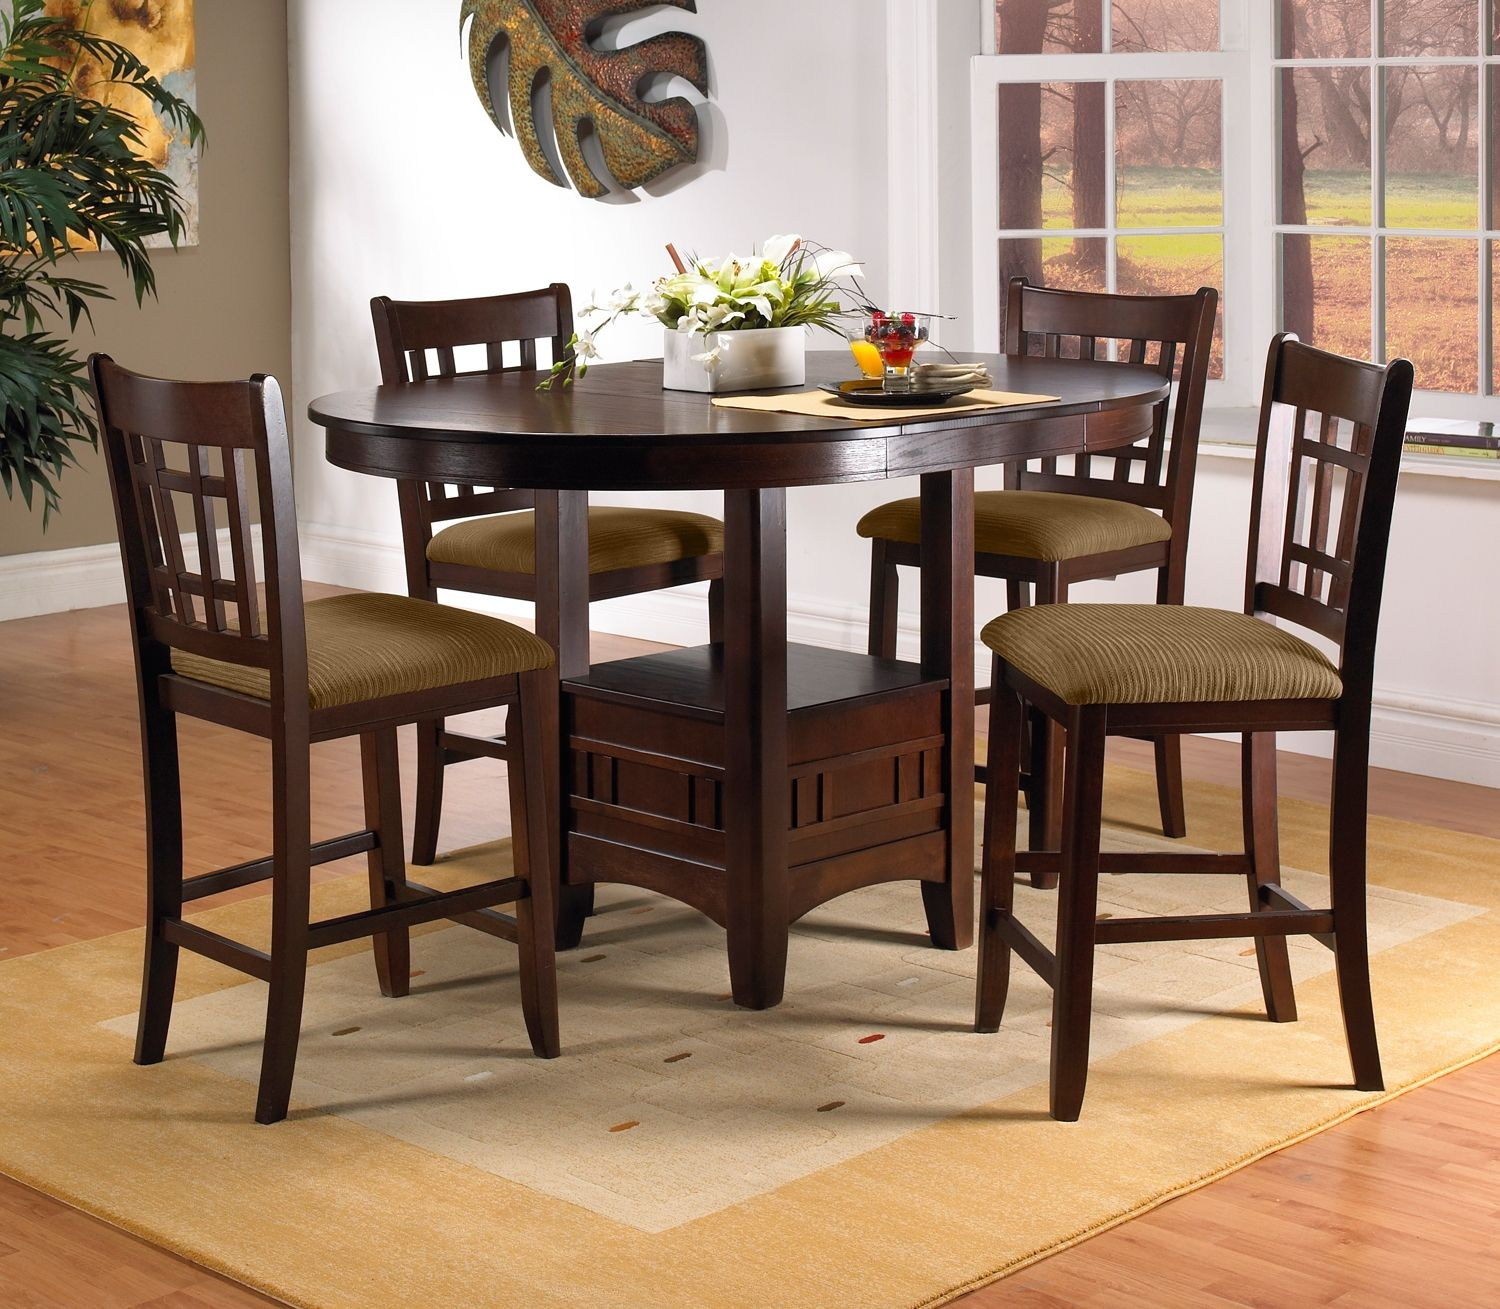 Casual Dining Room Furniturethe Brighton Ii Collectionbrighton Gorgeous Espresso Dining Room Table Sets Inspiration